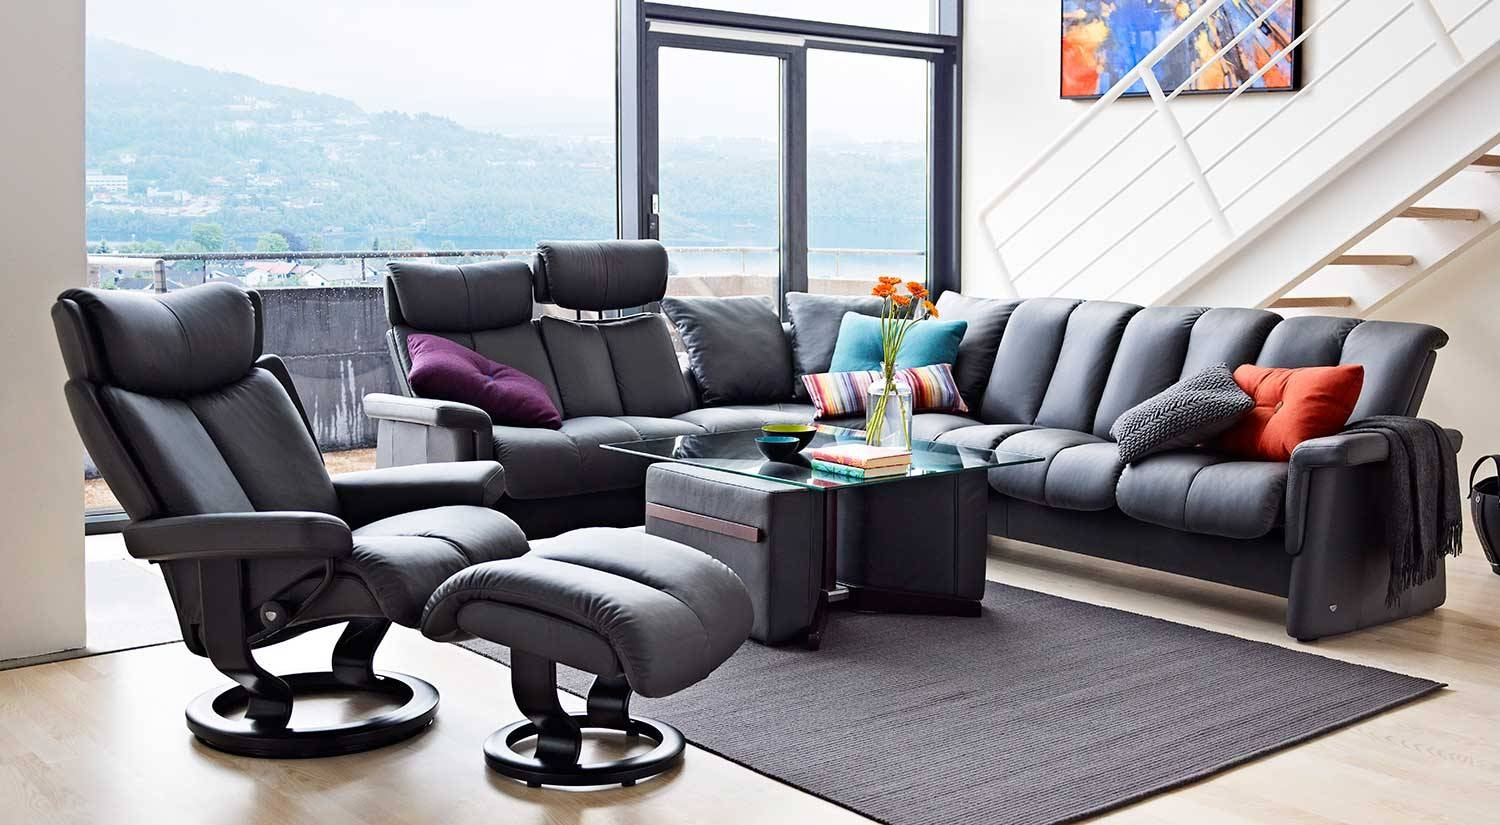 Circle Furniture - Legend Stressless Sectional | Ekornes with Ekornes Sectional Sofa (Image 8 of 30)